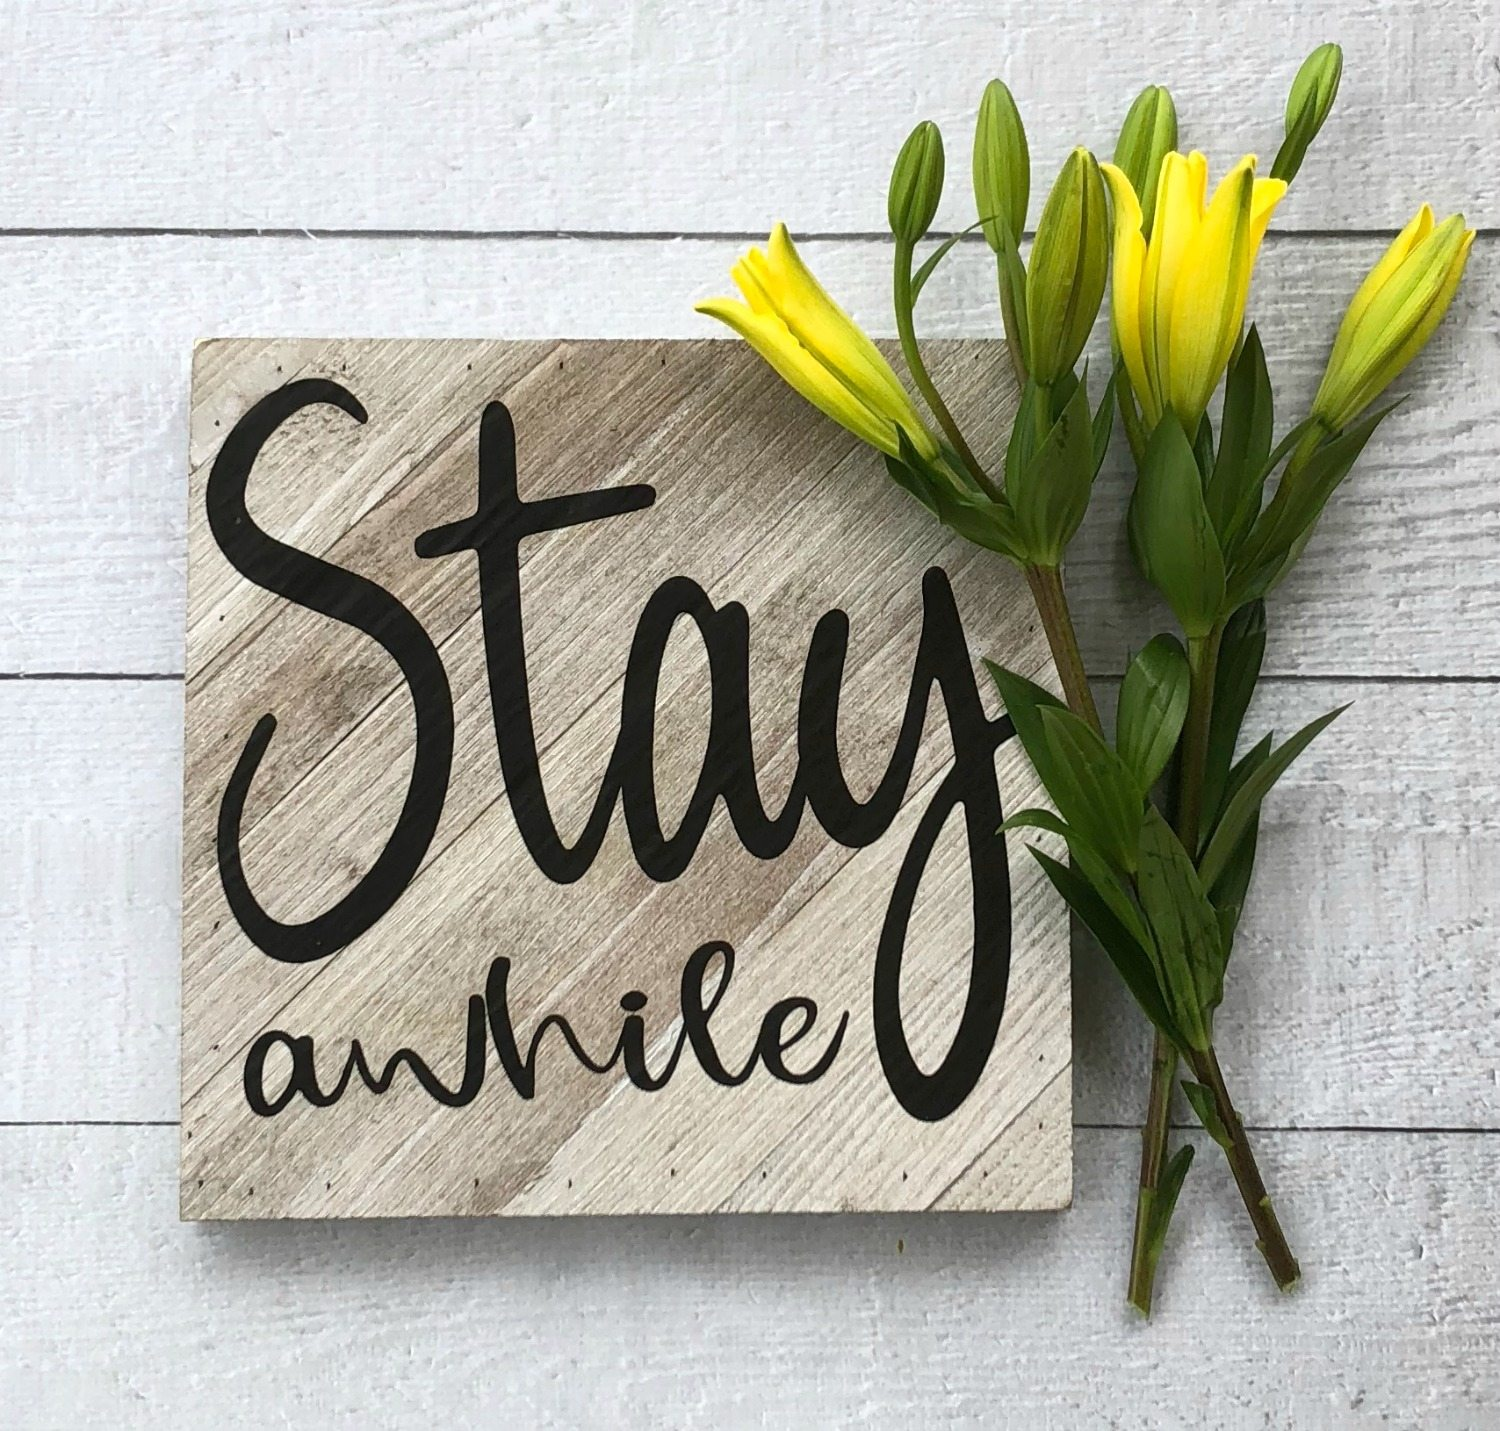 Make this Stay A While farmhouse sign, it's easy with a vinyl cutting machine. Perfect for farmhouse style.